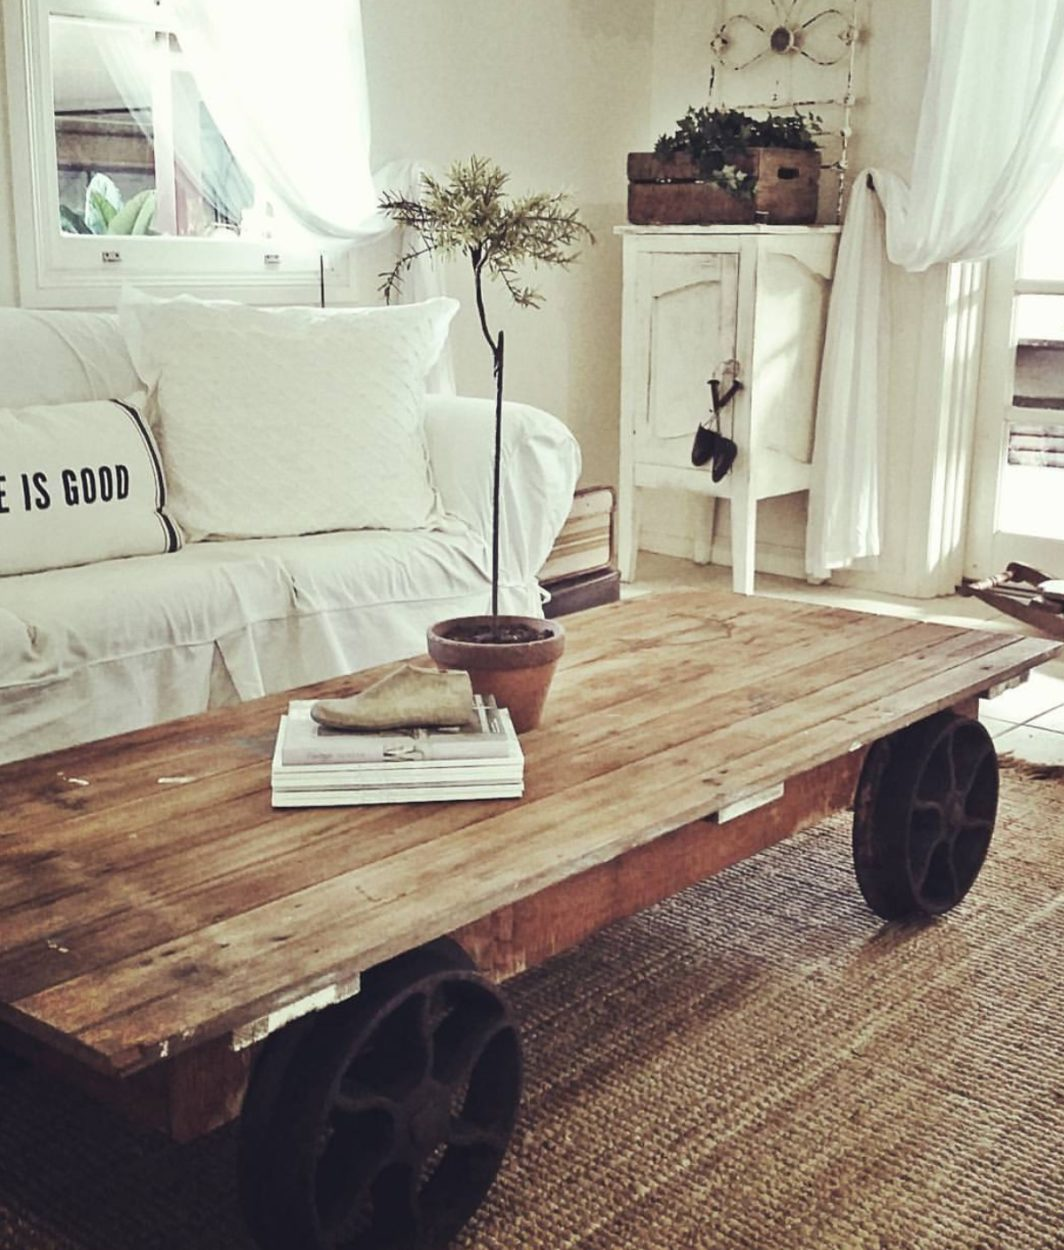 Farmhouse Home Tour using vintage and salvaged pieces. This is a #ssmfeatureme home tour with an Instagram friend Vintage Bliss. You can have a farmhouse home with thrifted, upcycled and items you already have.